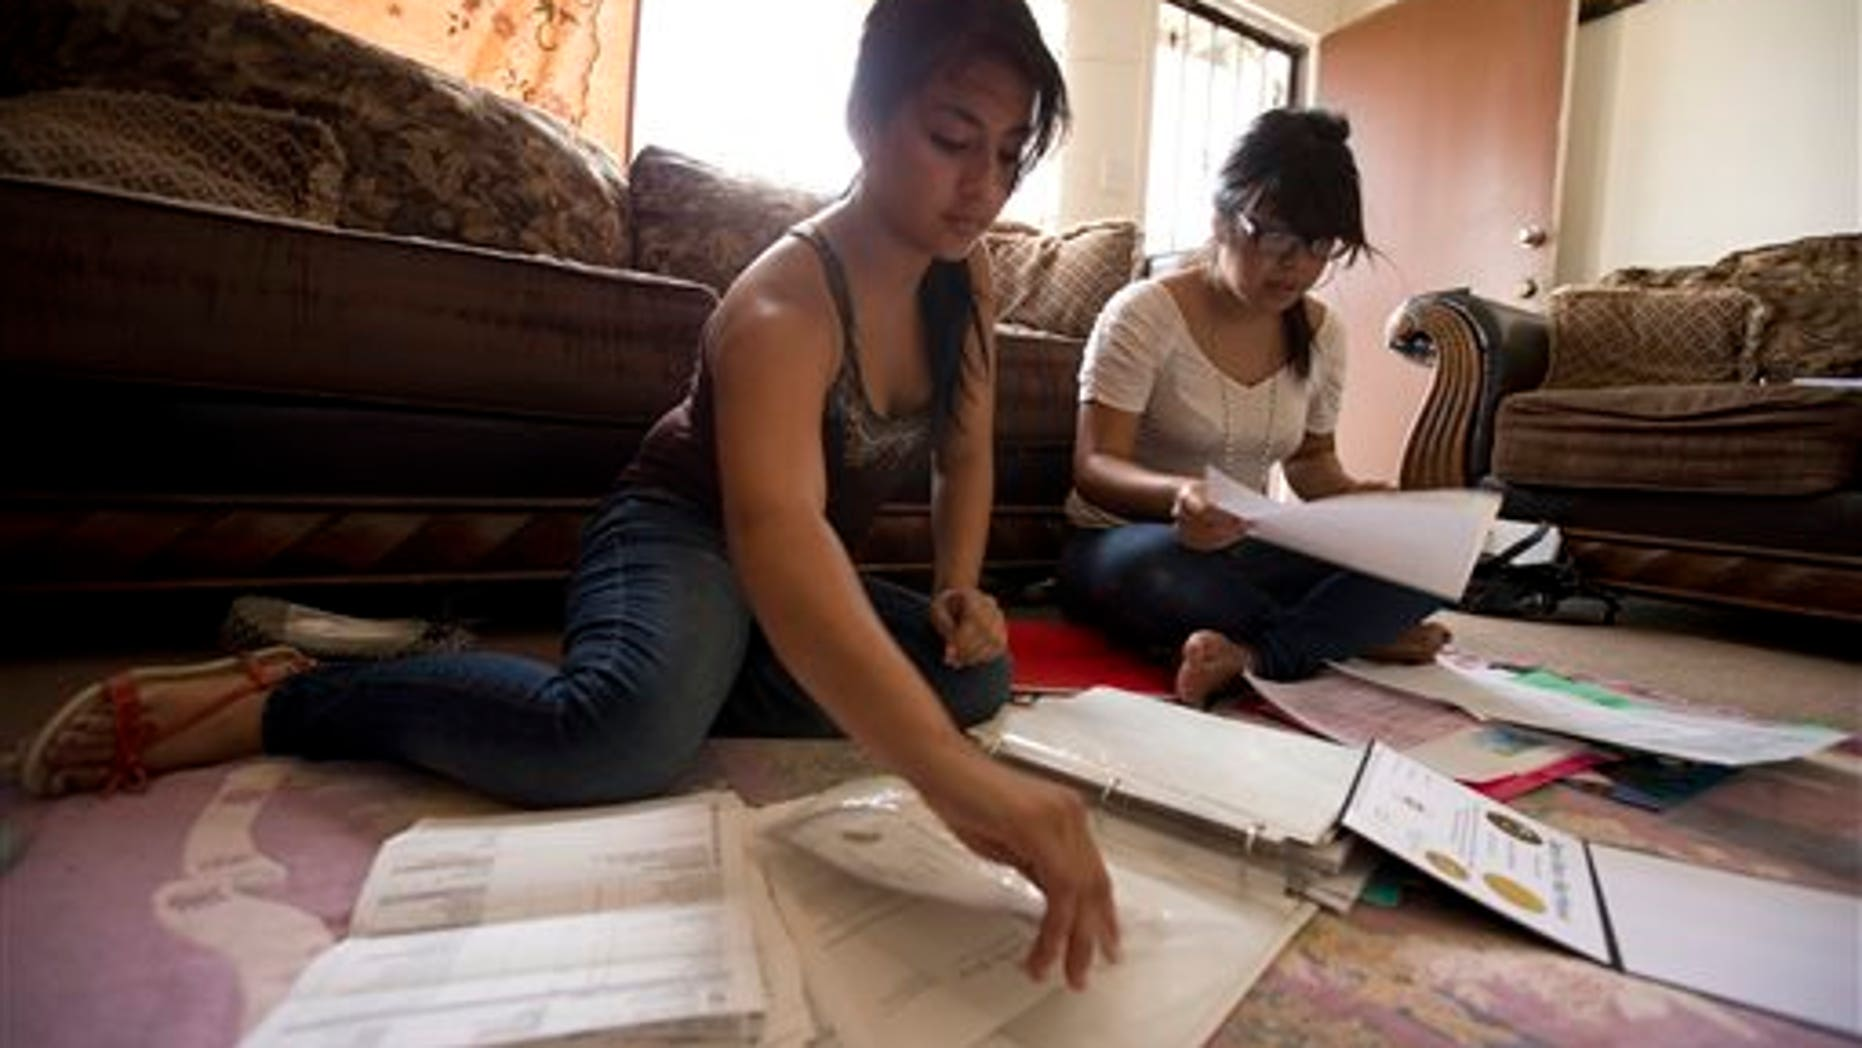 Itzel Guillen, left, sorts out some of the documents she needs to apply for a work permit along with Lucero Maganda, right, at her home  in San Diego, Ca. Guillen and Maganda are among those hoping for the right to work legally in America without being deported.(AP Photo/Gregory Bull, File)